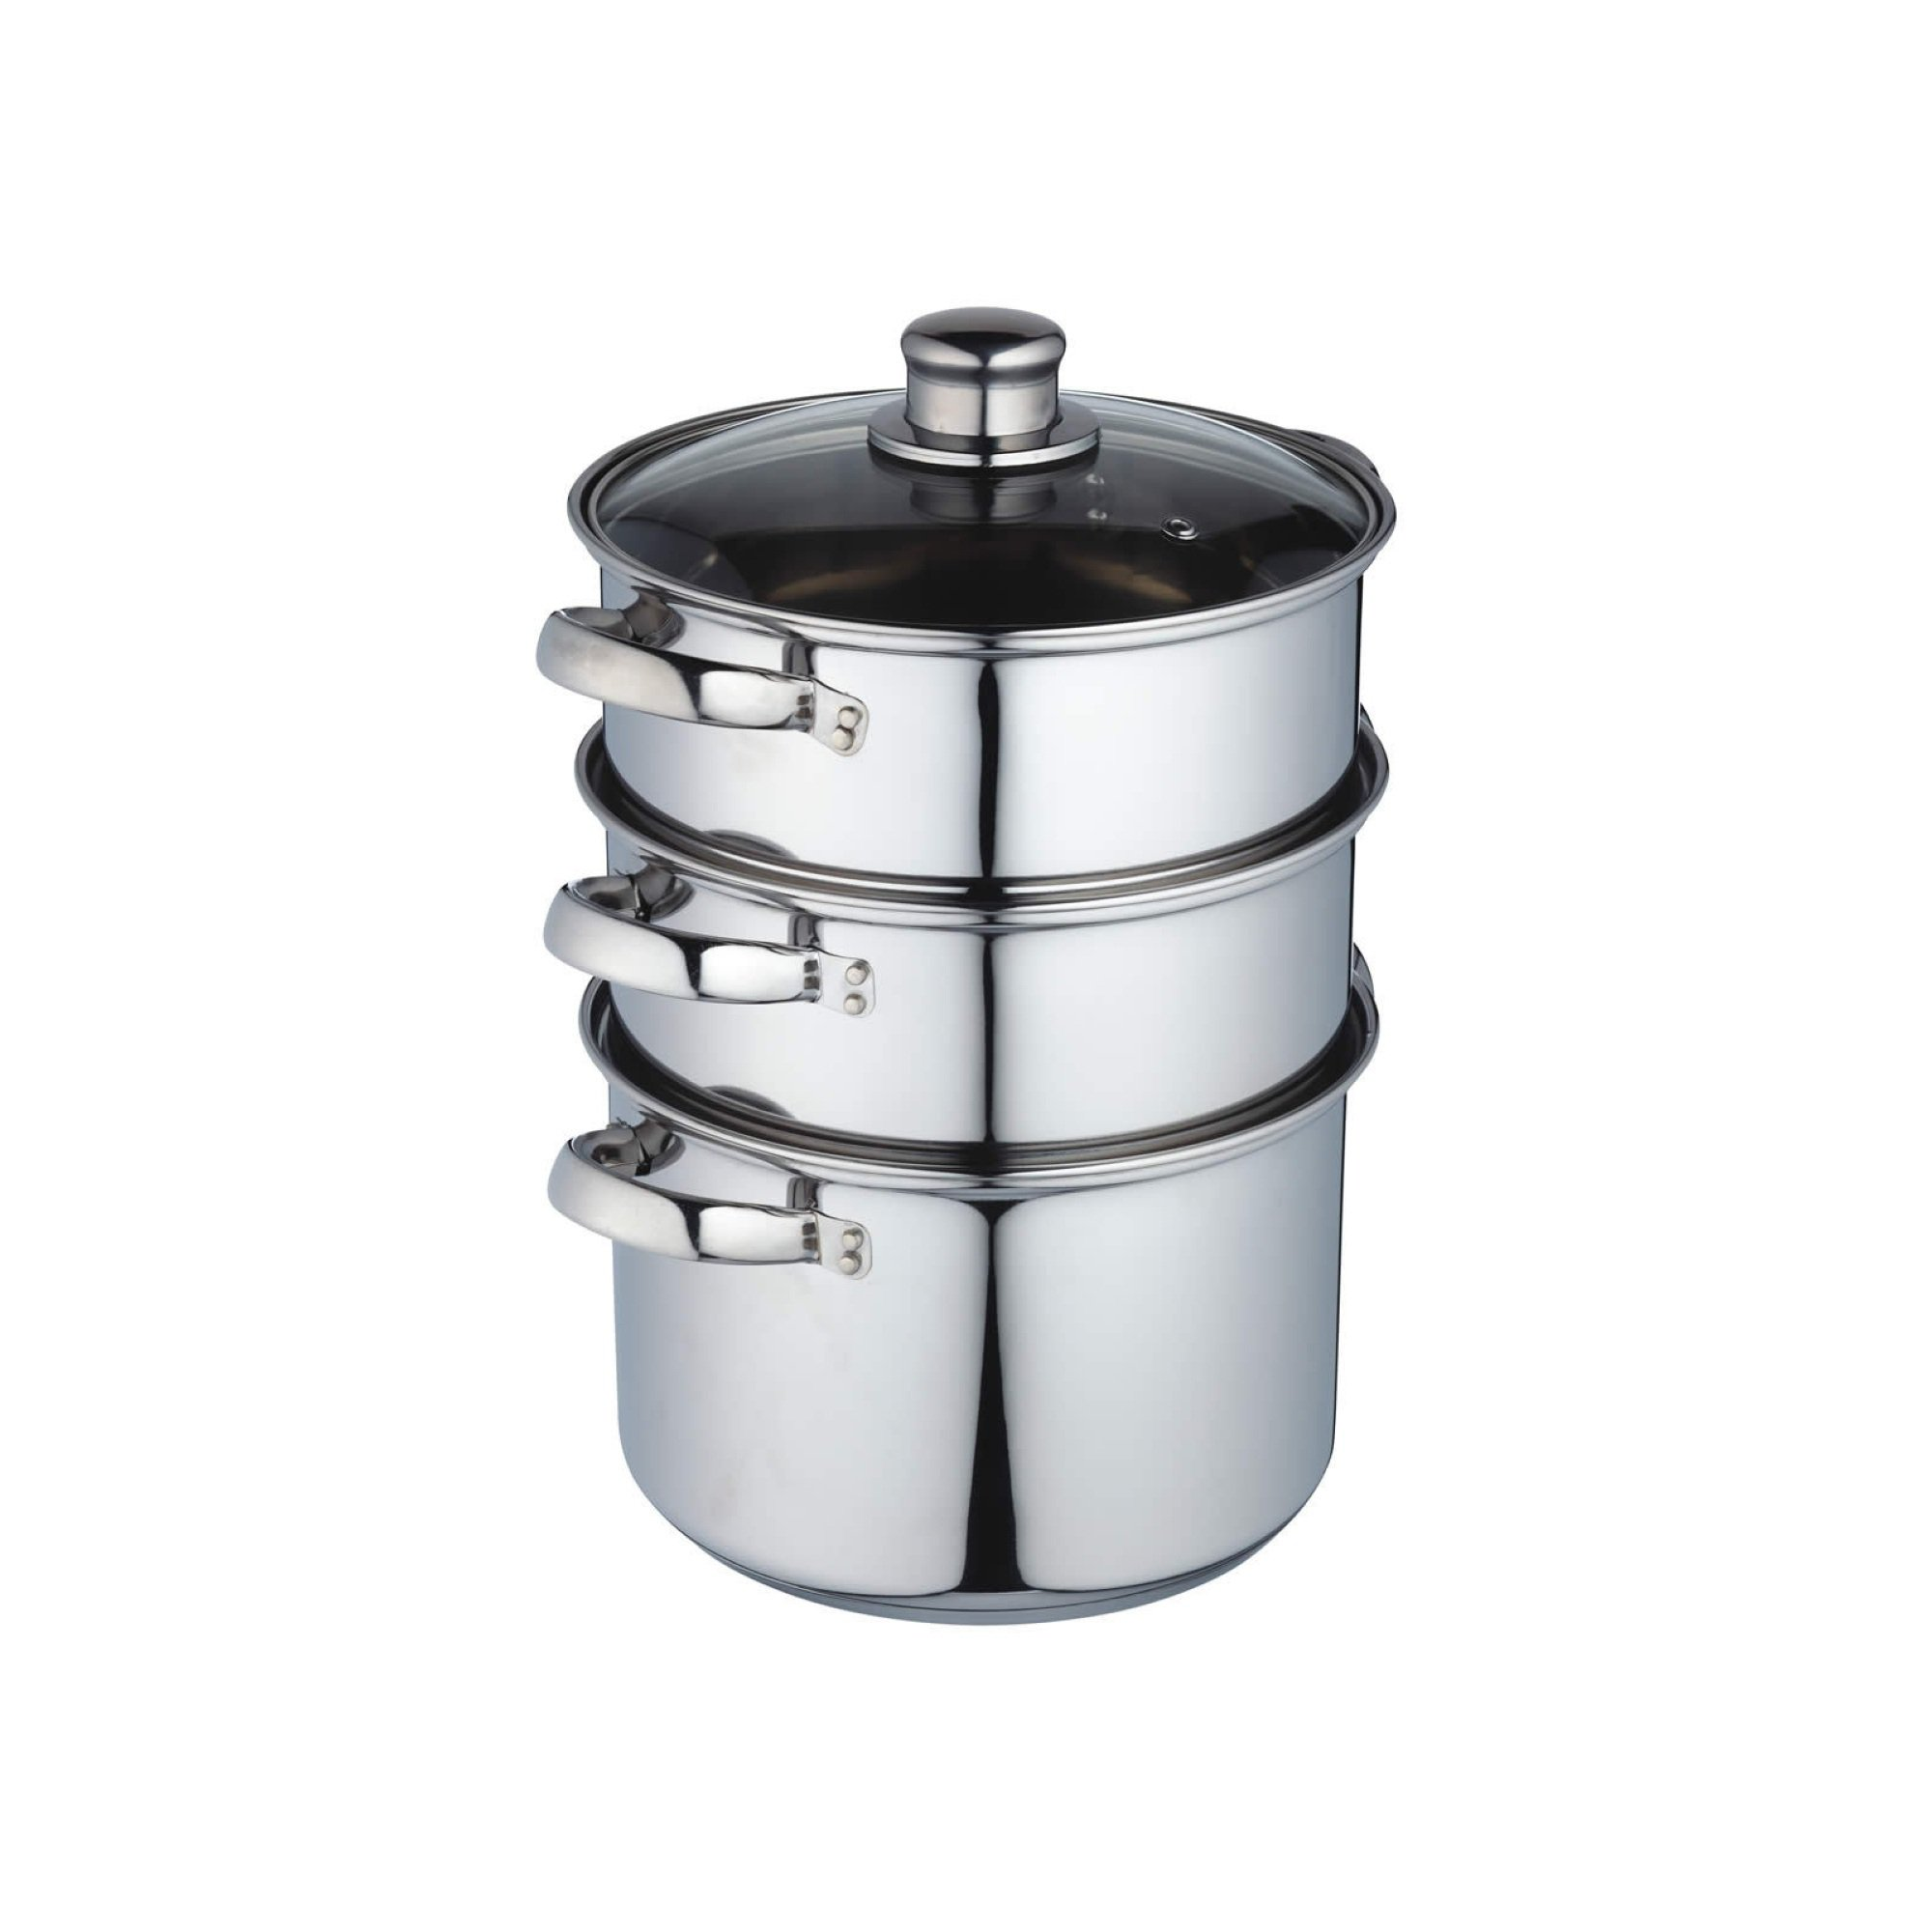 Kitchencraft Stainless Steel Three Tier 20cm Steamer At